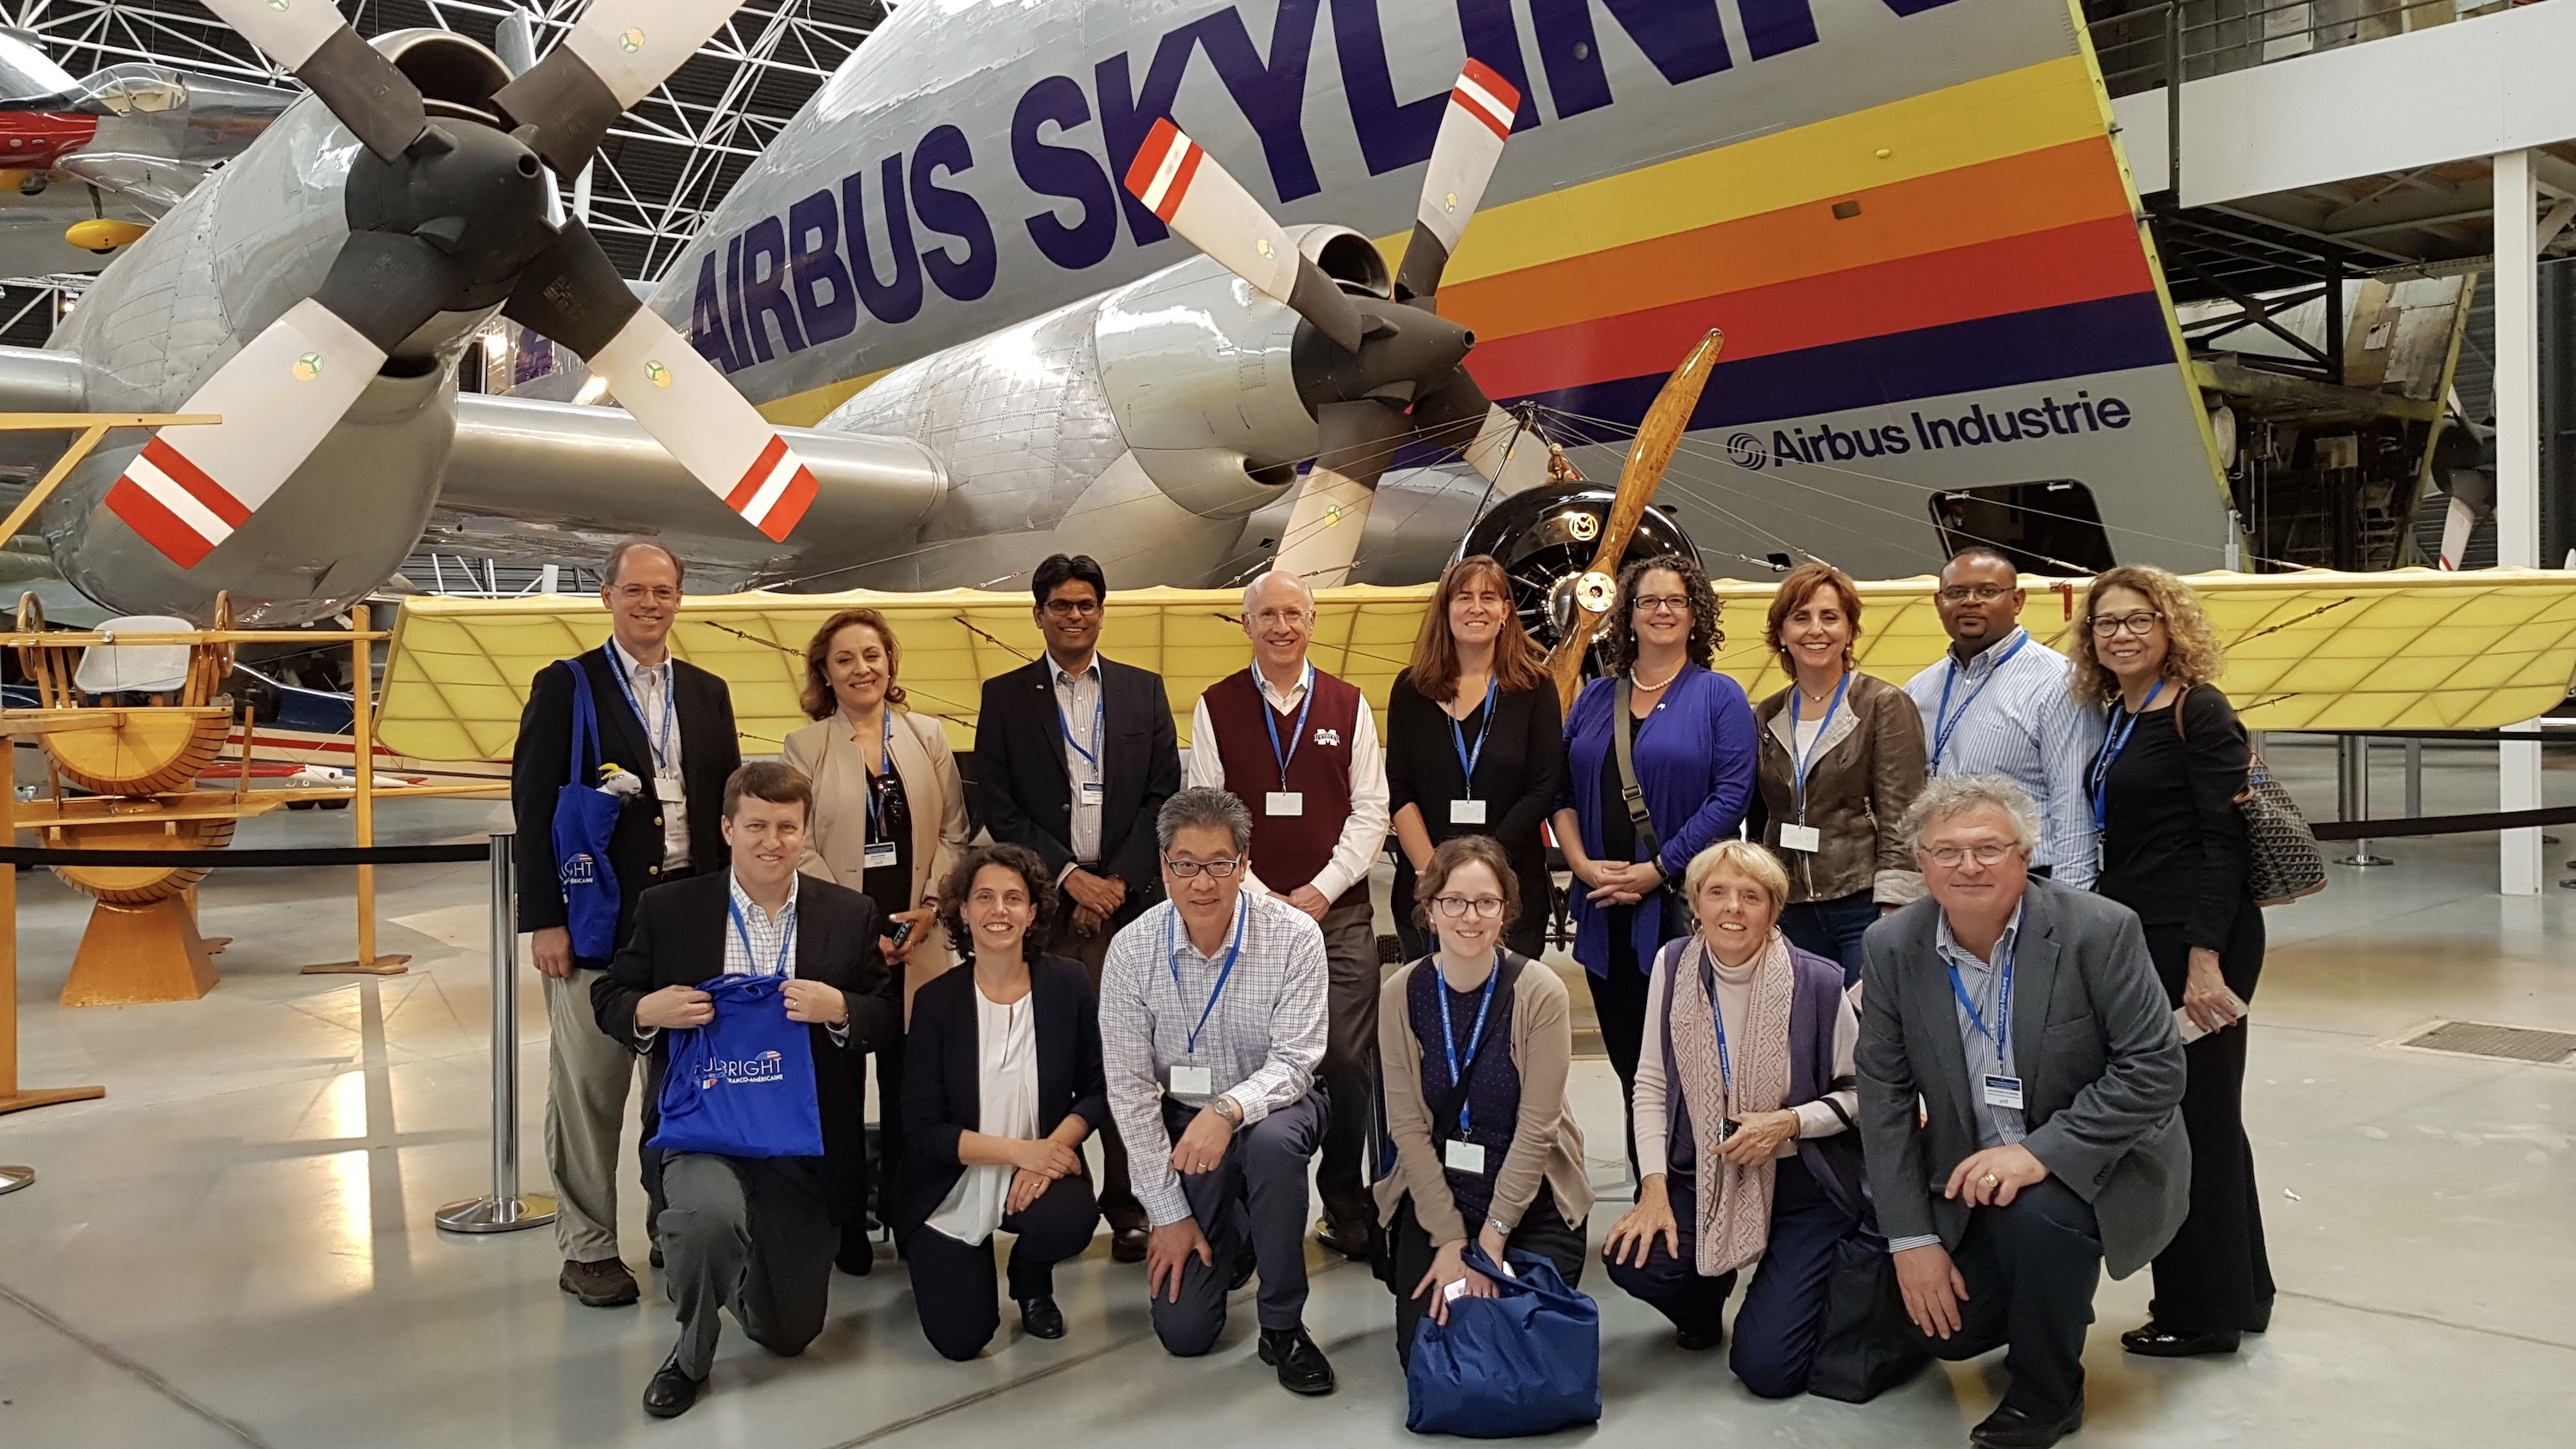 The Fulbright International Education Administrators (IEA) Seminar to France group (Director of Services for International Students and Scholars (SISS) Wesley Young third from left, kneeling) at the Airbus factory in Toulouse.